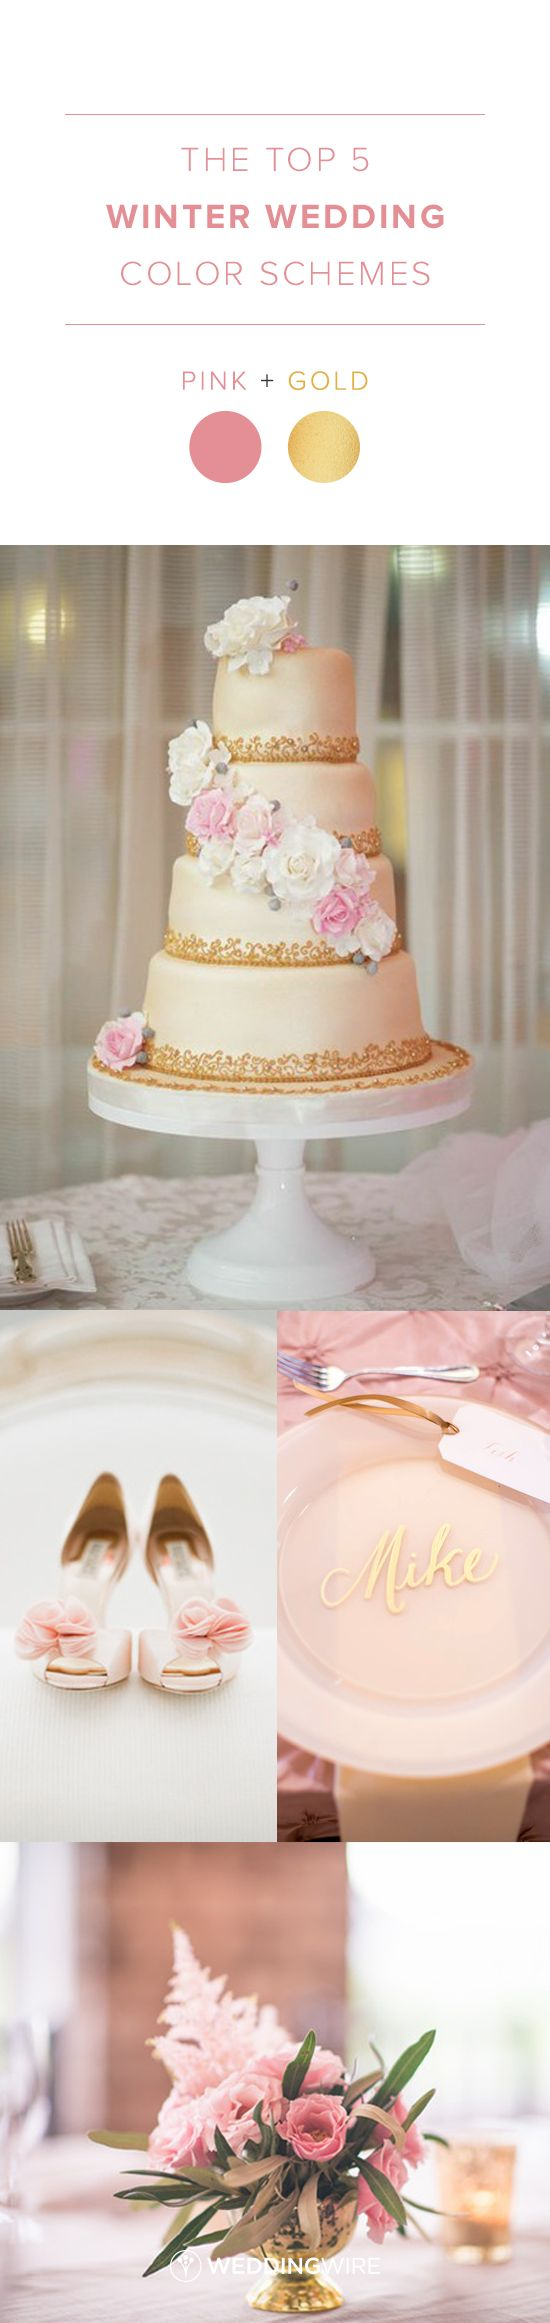 The Top 5 Winter Wedding Color Schemes: Pink and Gold Winter Wedding Color Palette